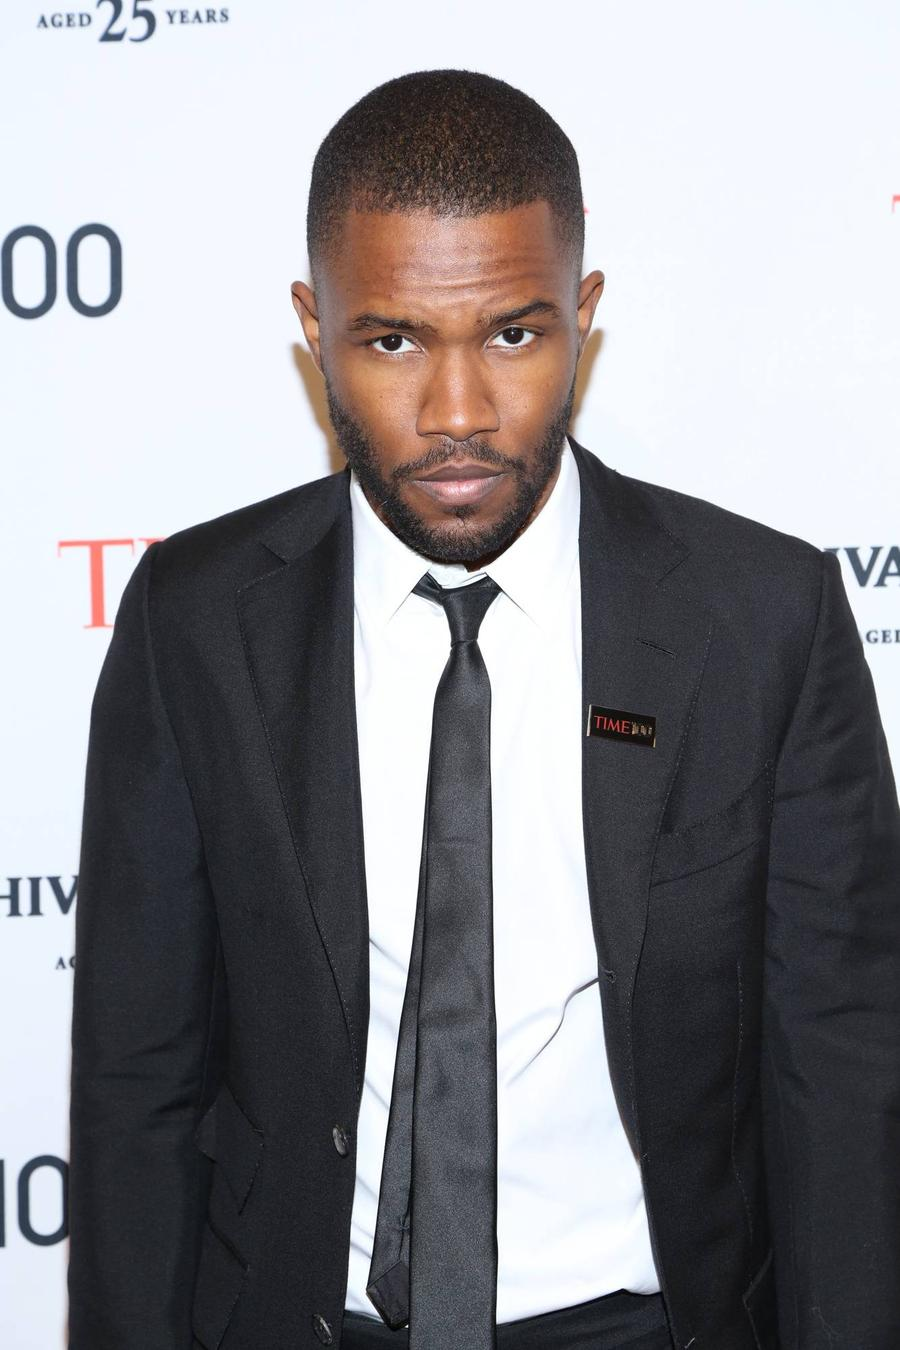 Frank Ocean Addresses Orlando Shooting In Emotional Social Media Post